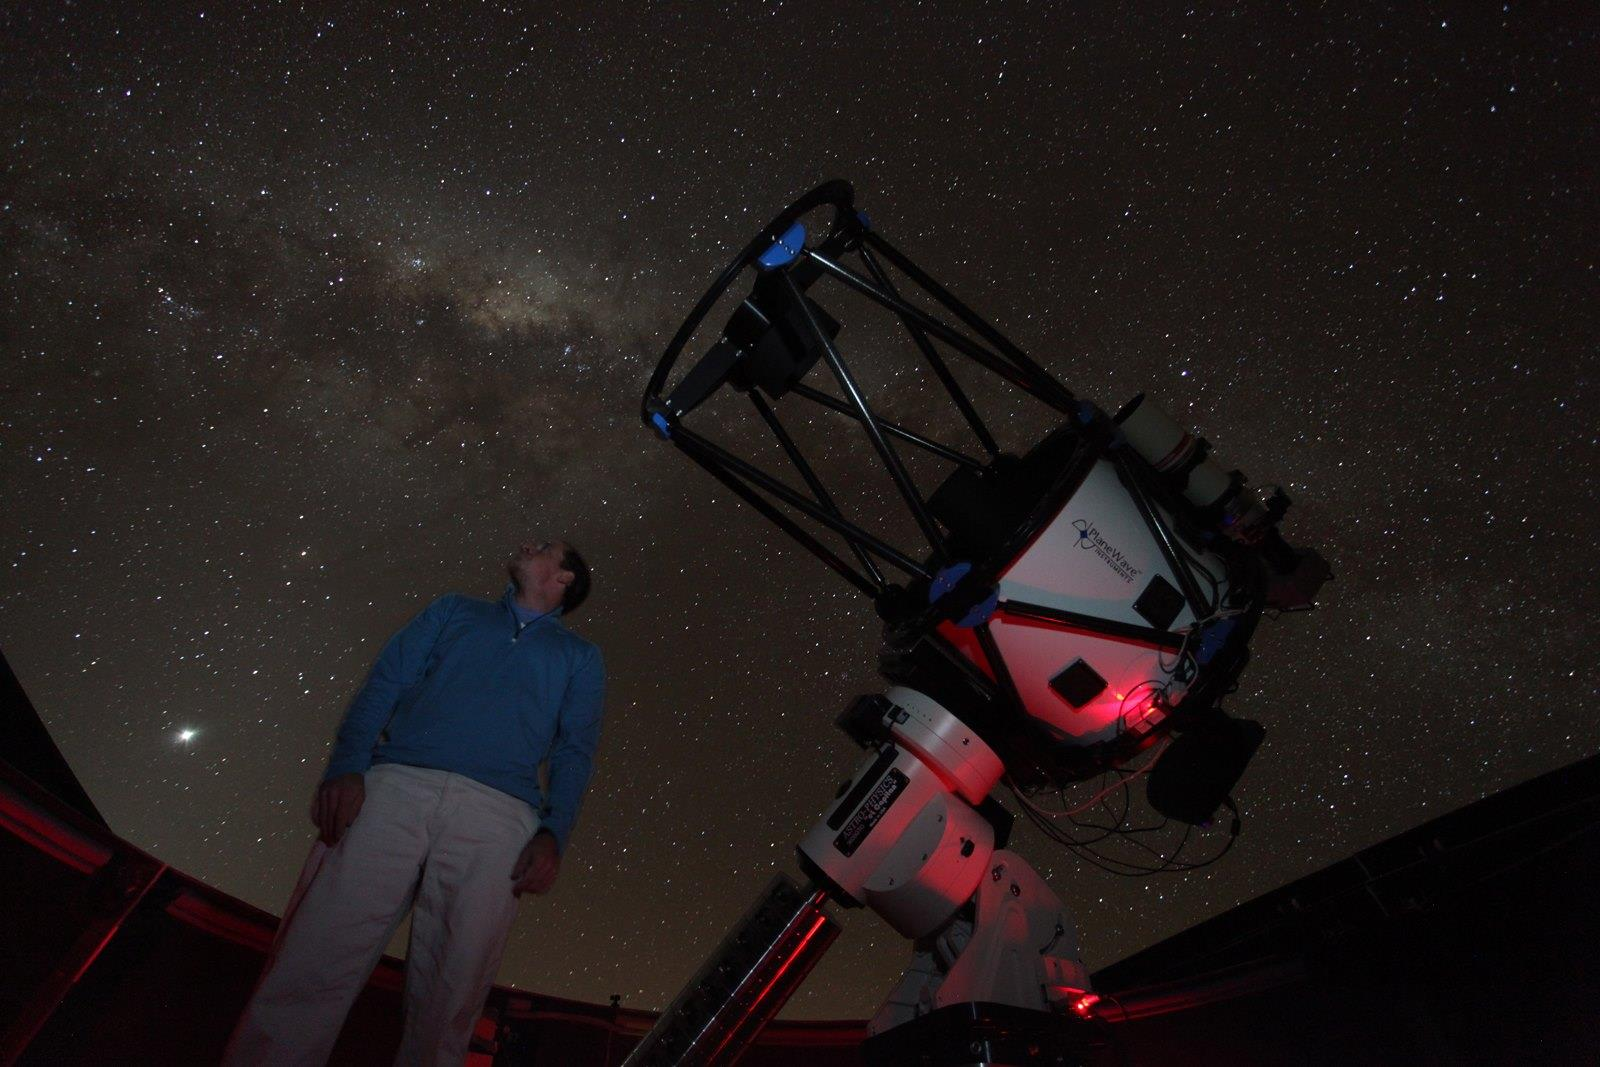 Graduate student Justin Moore and the 24-inch diameter PROMPT-8 telescope at Cerro Tololo Inter-American Observatory, Chile.